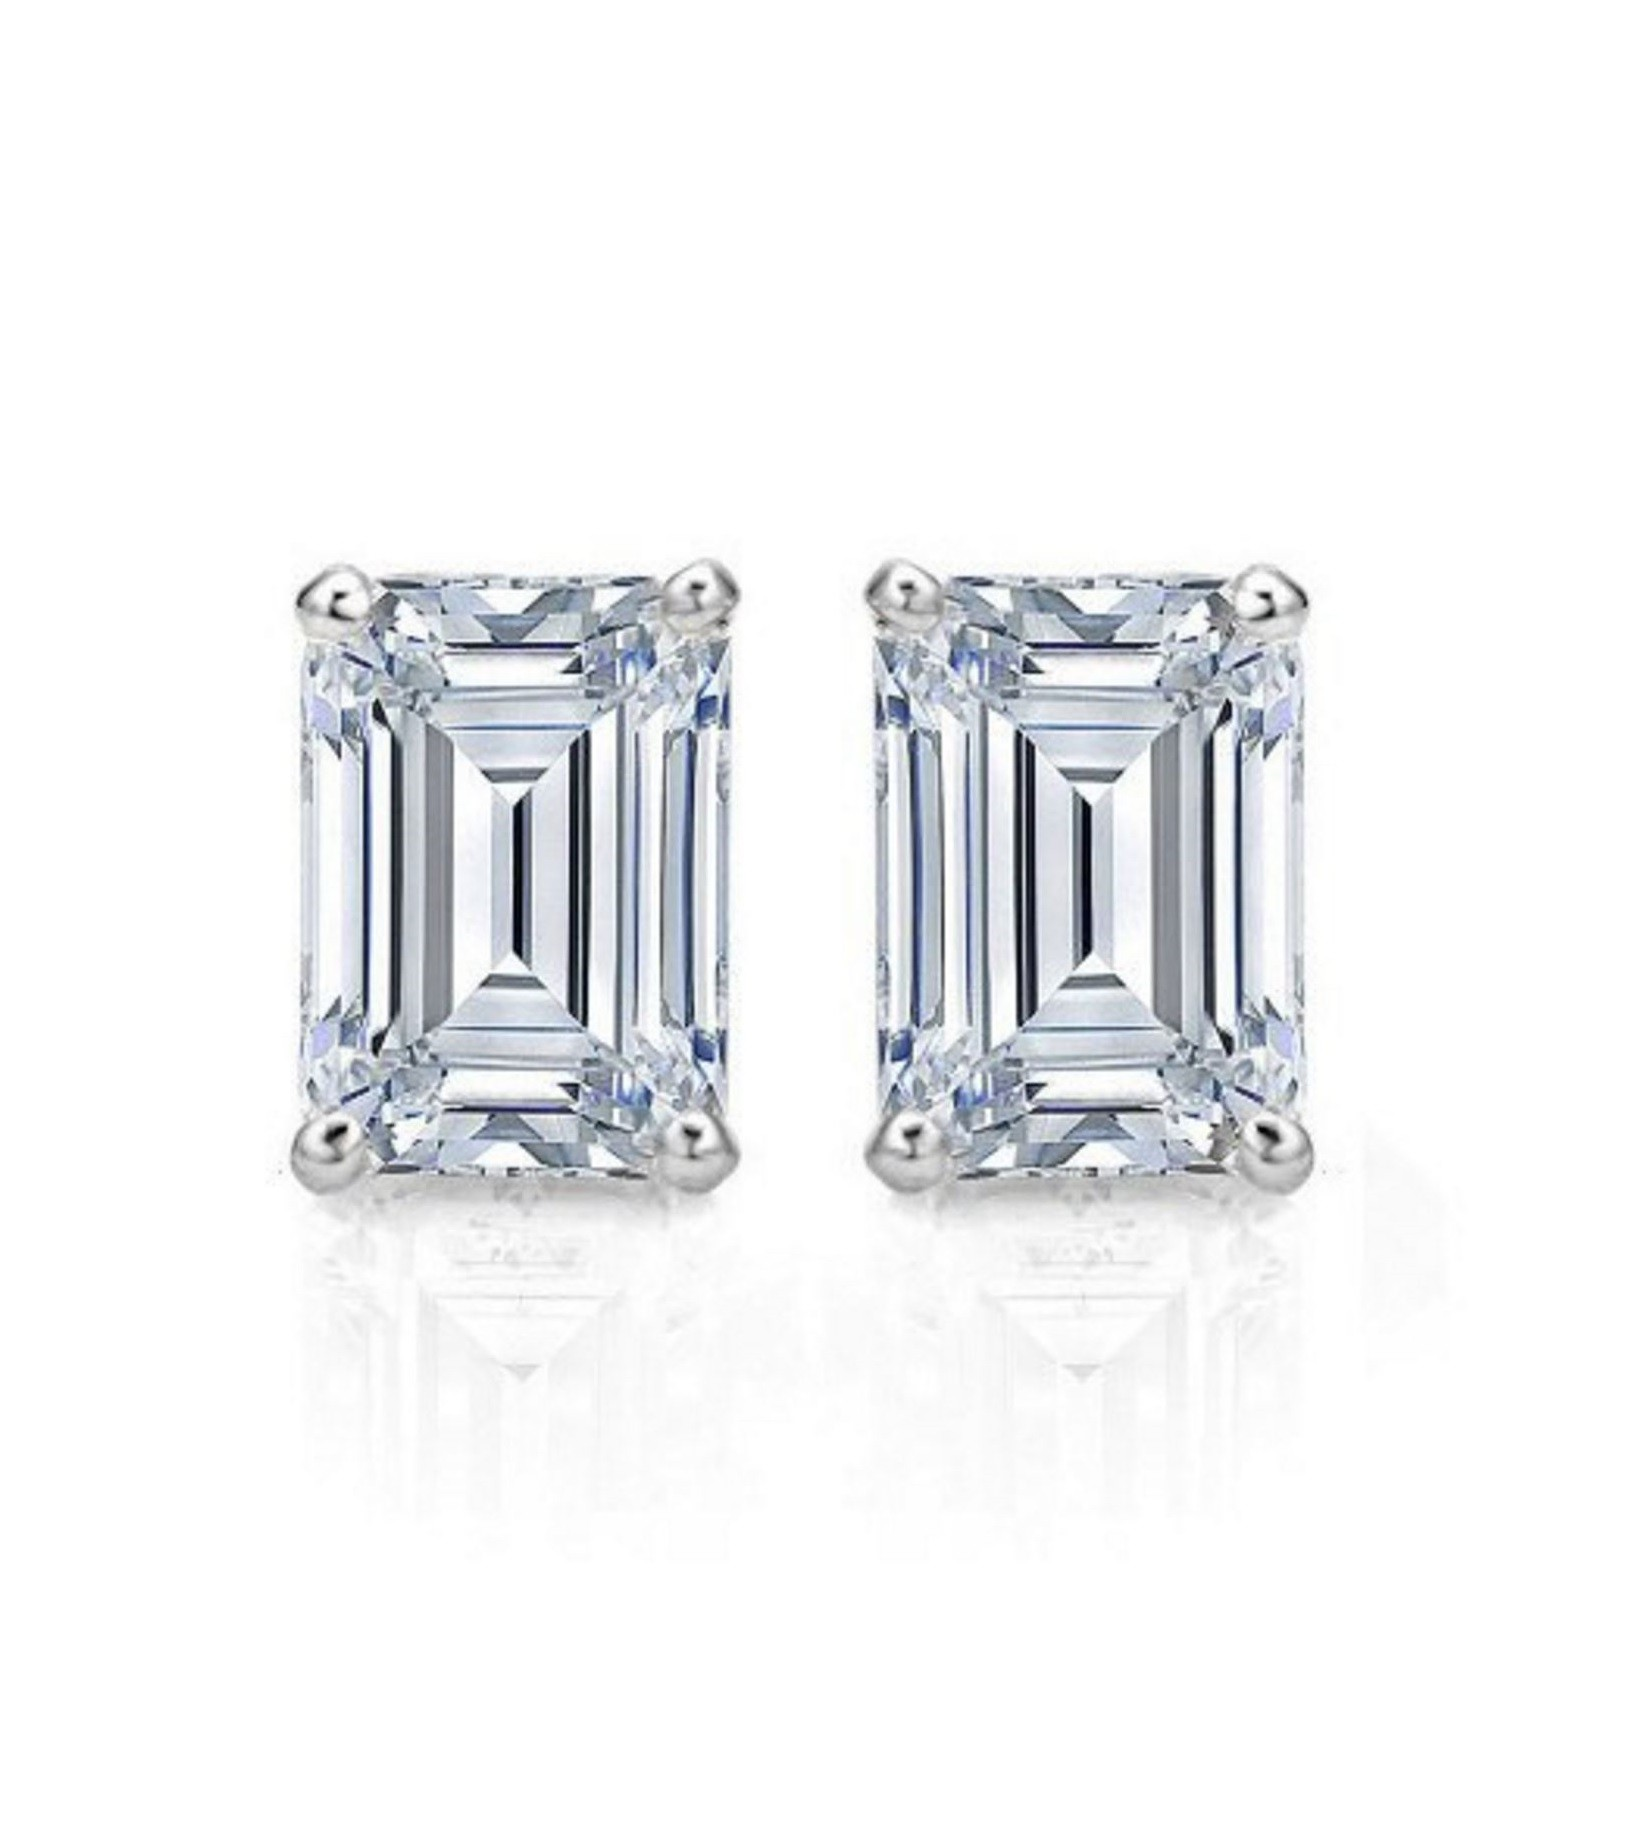 b2317cccf 1ct Emerald Cut Stud Solitaire Earrings Gift Solid 14k White Gold ...